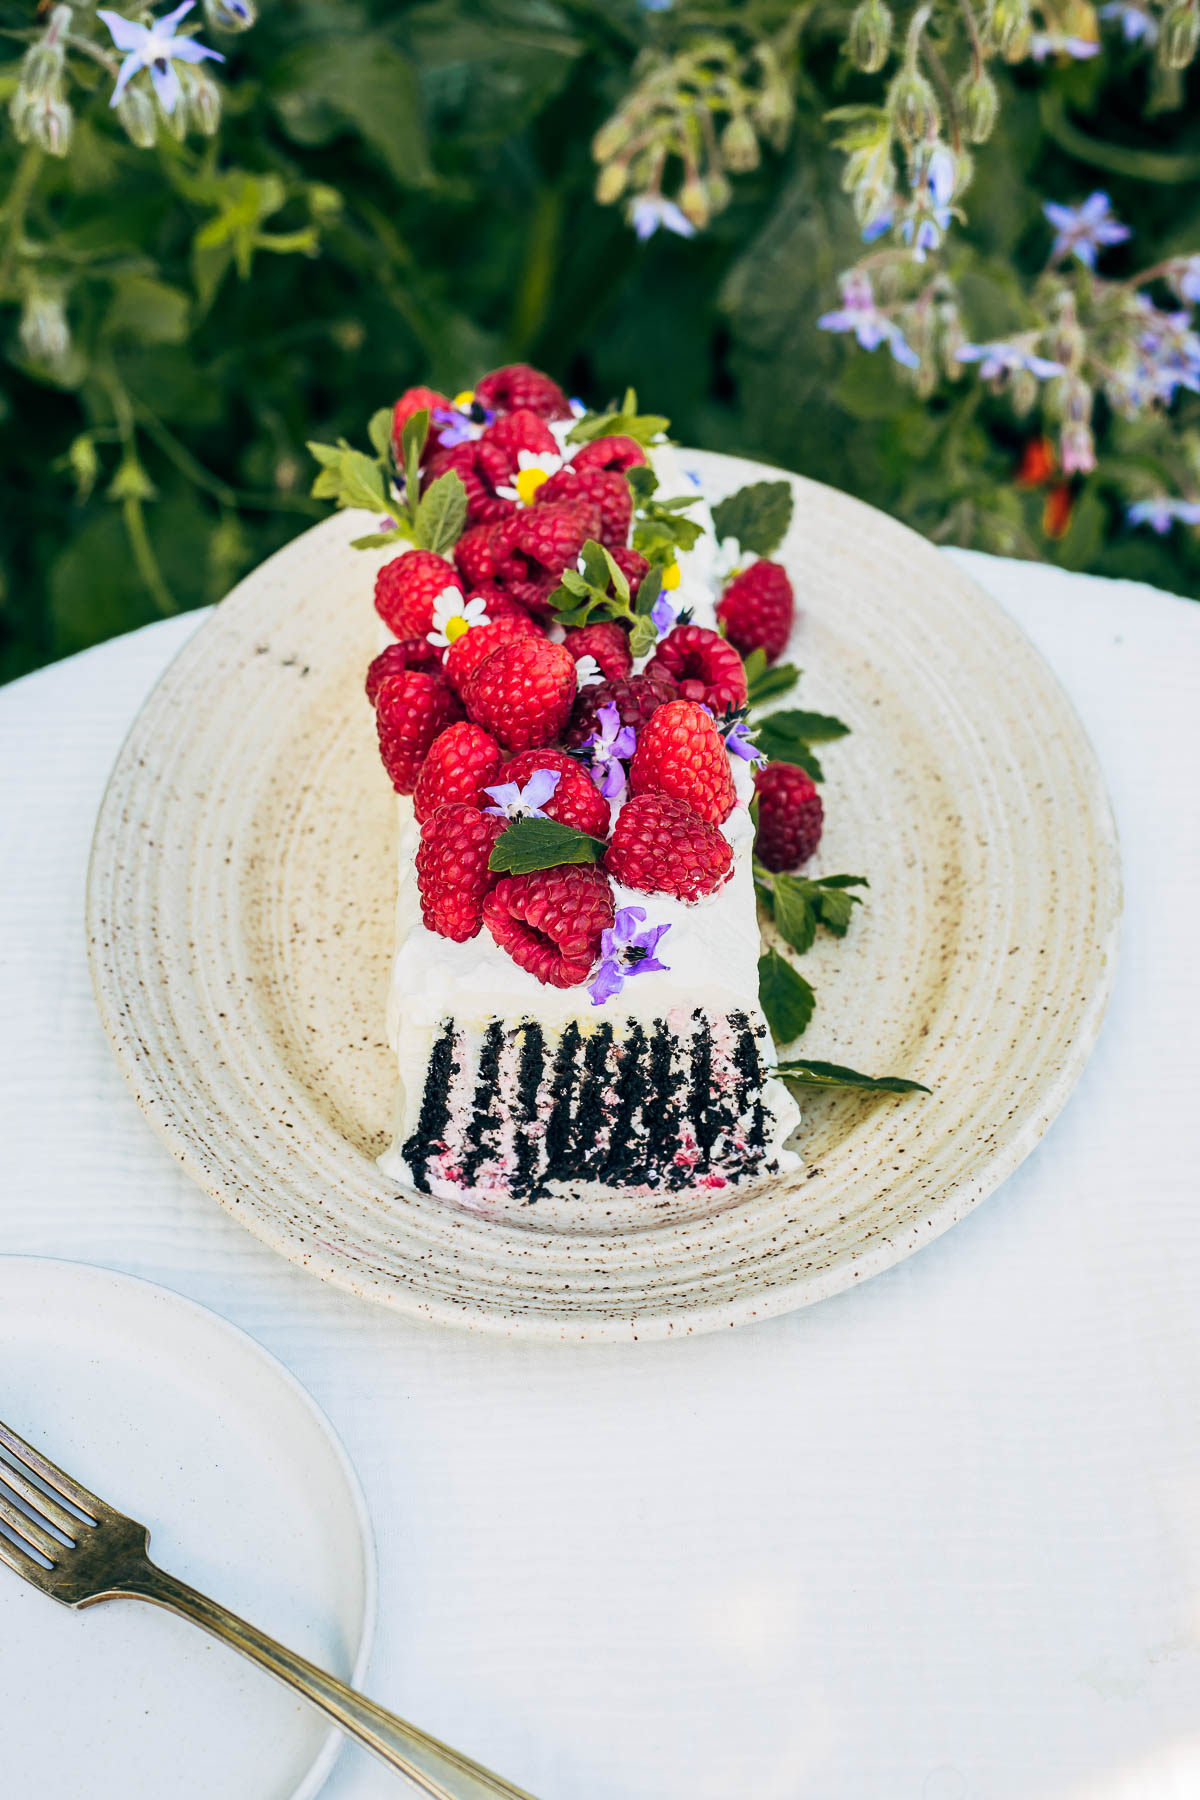 Icebox cake topped with berries and flowers, one slice removed.